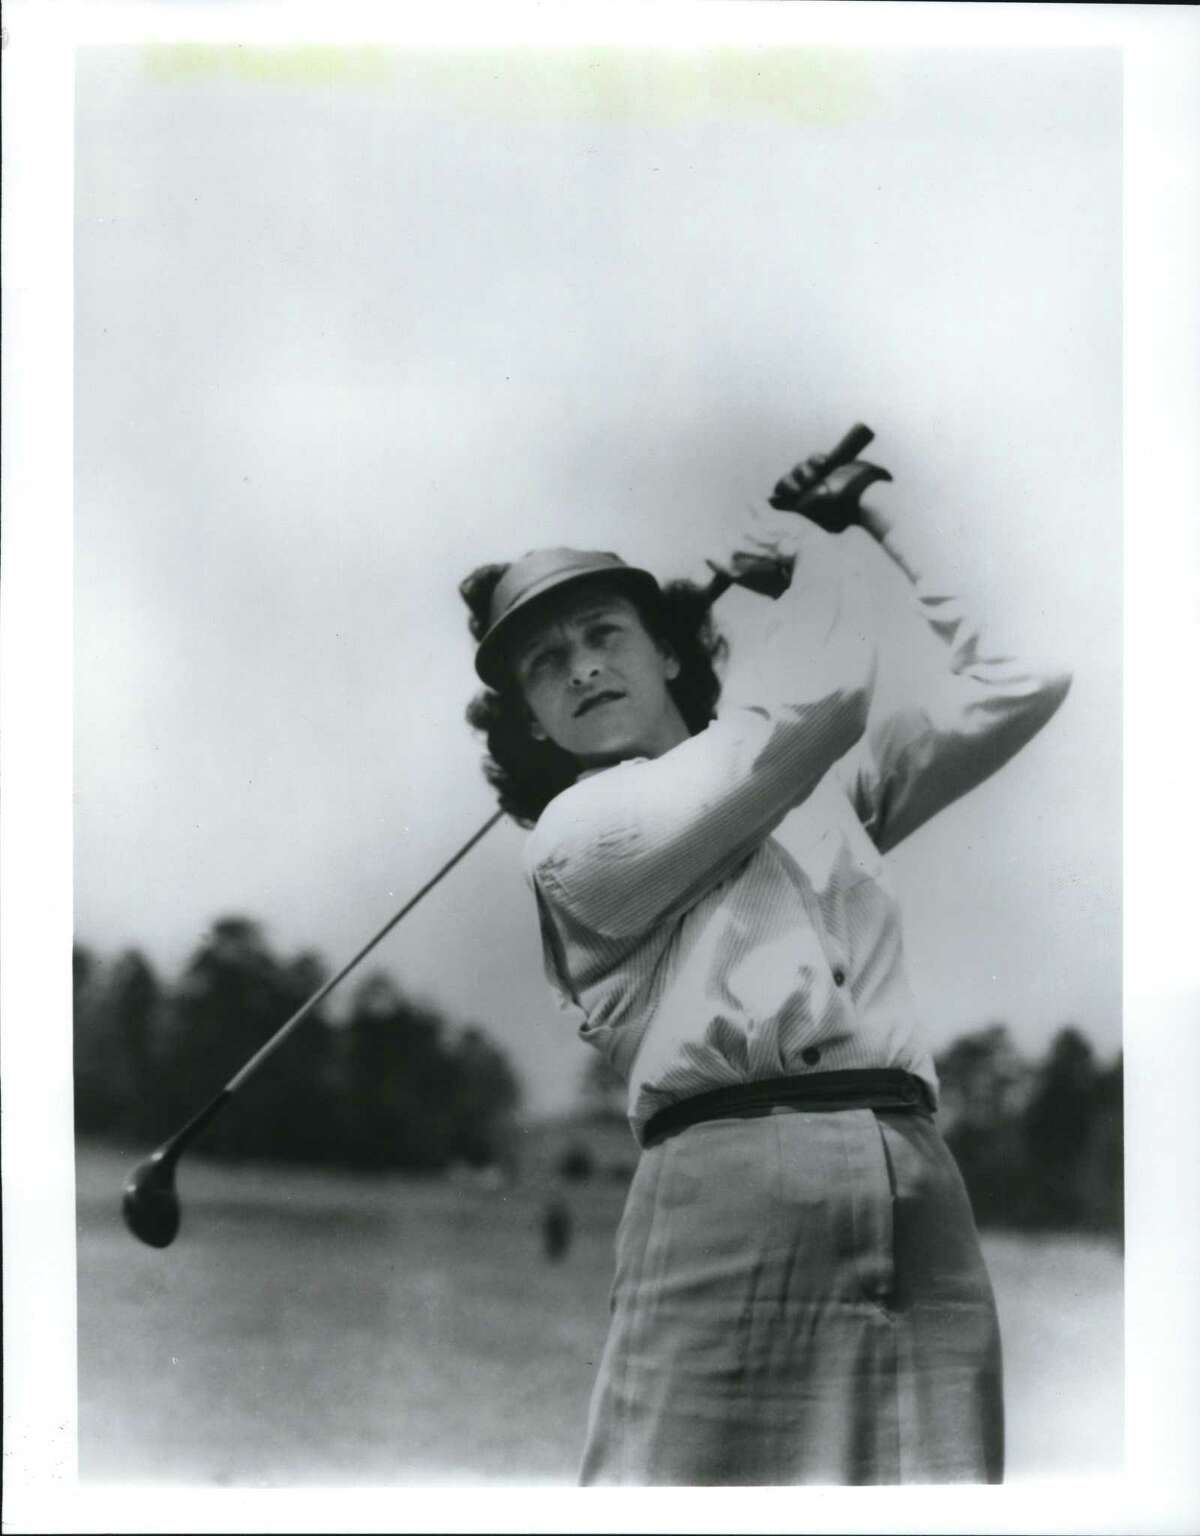 """Babe Didrikson Zaharias - Babe Didrikson, who won three U.S. Women's Open championships (1948, '50 and '54) in the early years of women's golf. From the home video series """"The Complete History of Golf,"""" Copyright Professional Golfers' Association of America (PGA) and MPI Home Video."""